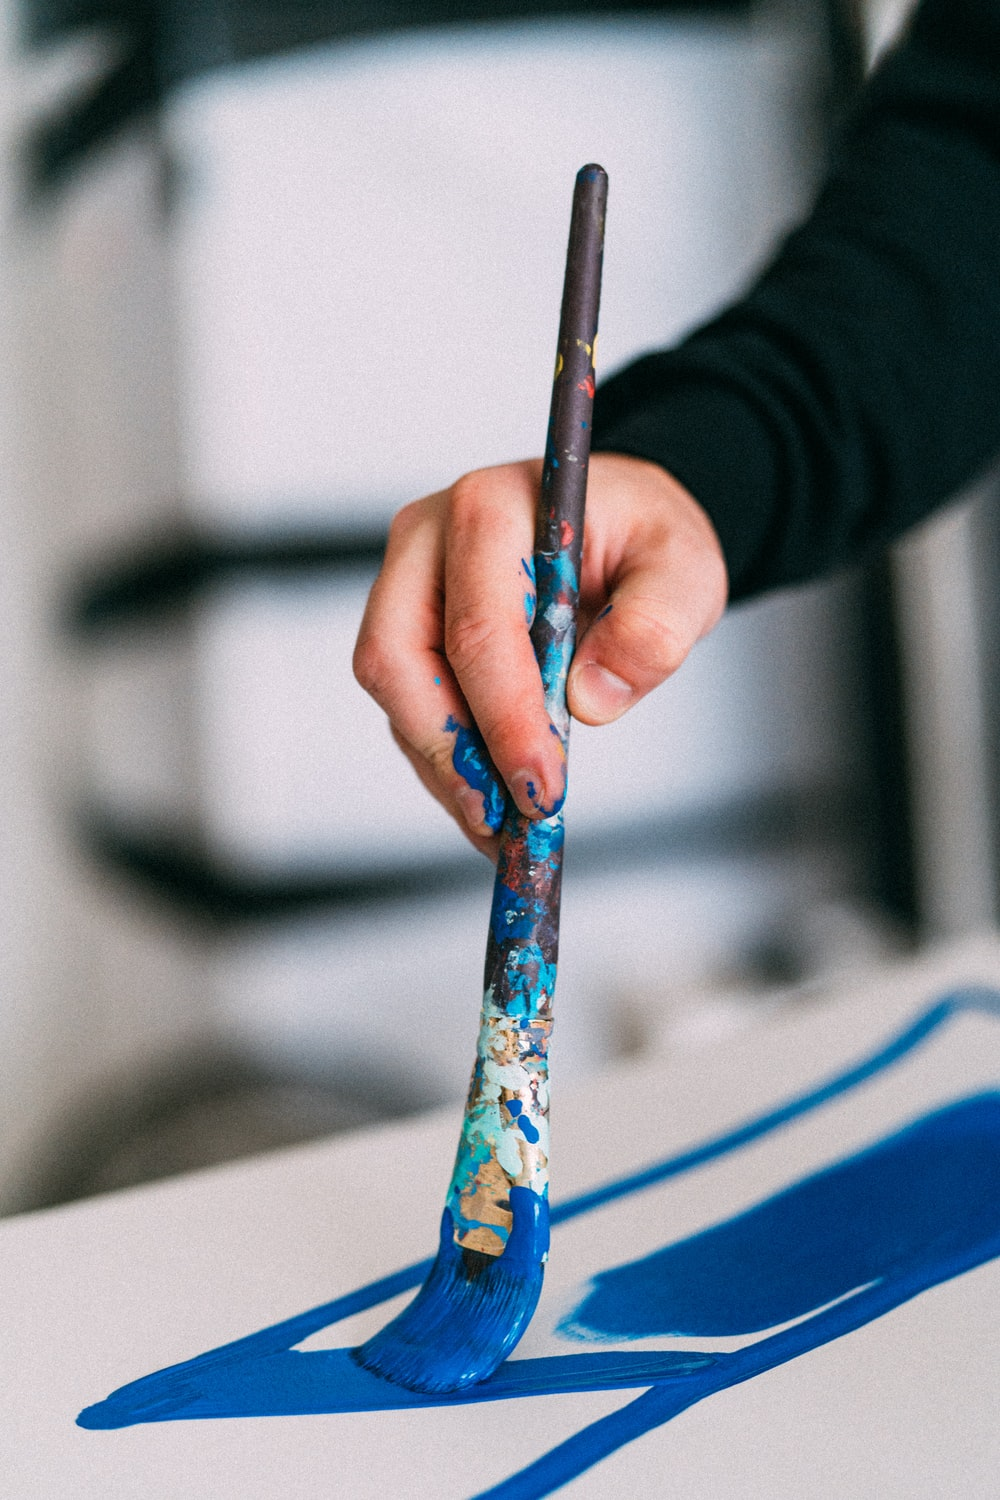 person holding blue and white paint brush